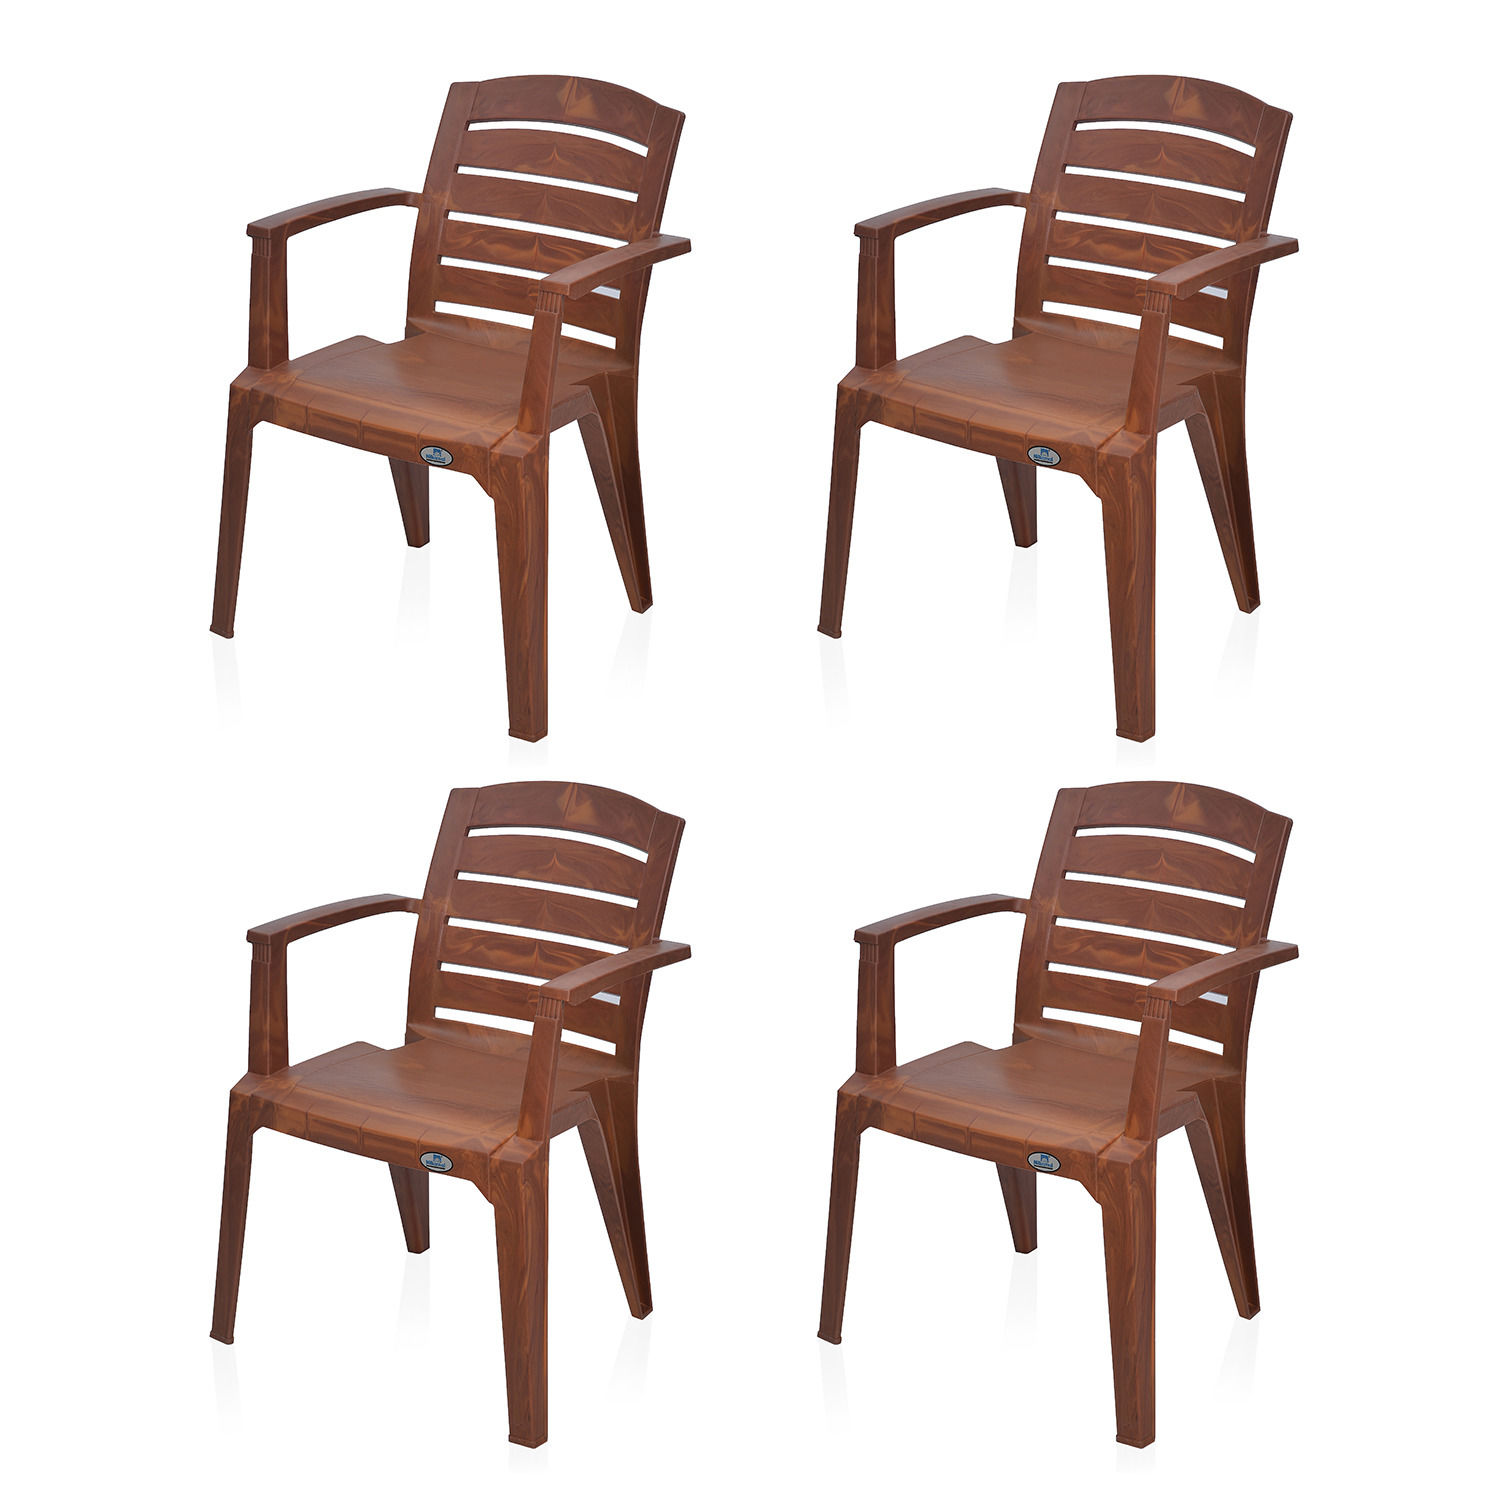 Buy Nilkamal Mango Wood Passion Garden Chair Set Of 4 Flocpason4kitmgwd Best Prices Industrybuying